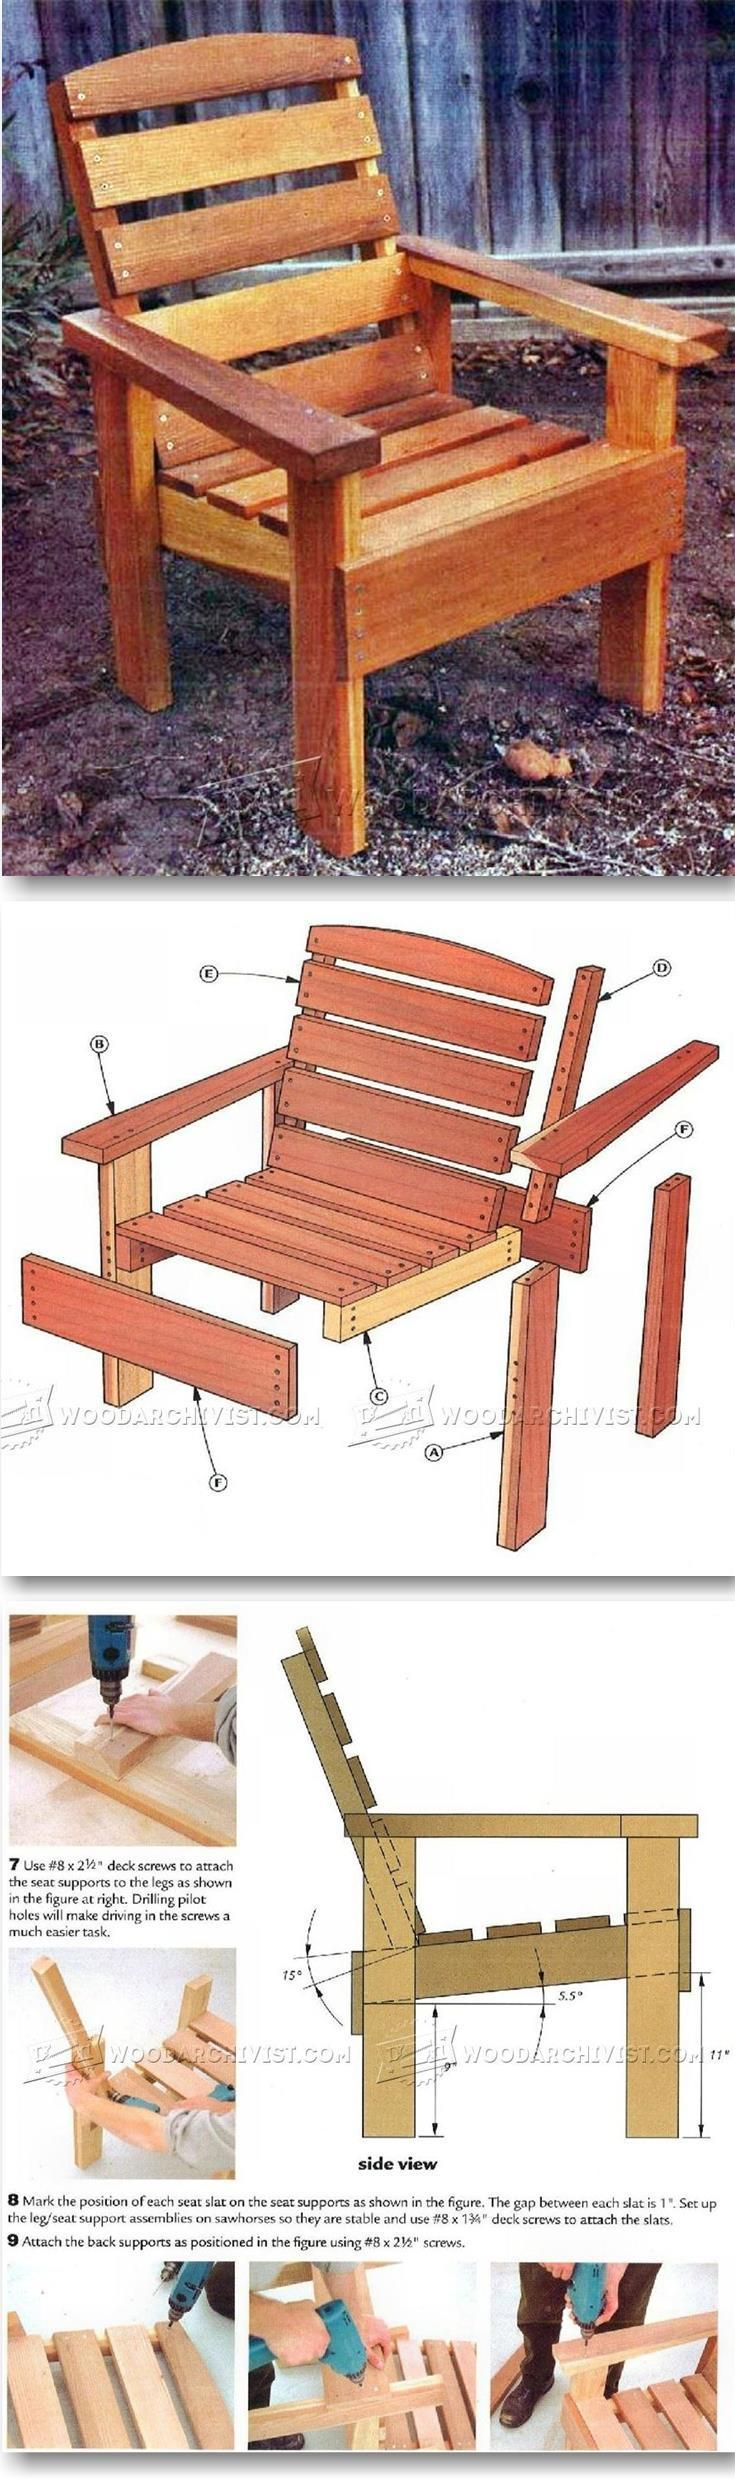 Deck Chair Plans Outdoor Furniture Plans Projects Woodarchivist Com Diy Outdoor Furniture Plans Outdoor Furniture Plans Wood Furniture Plans